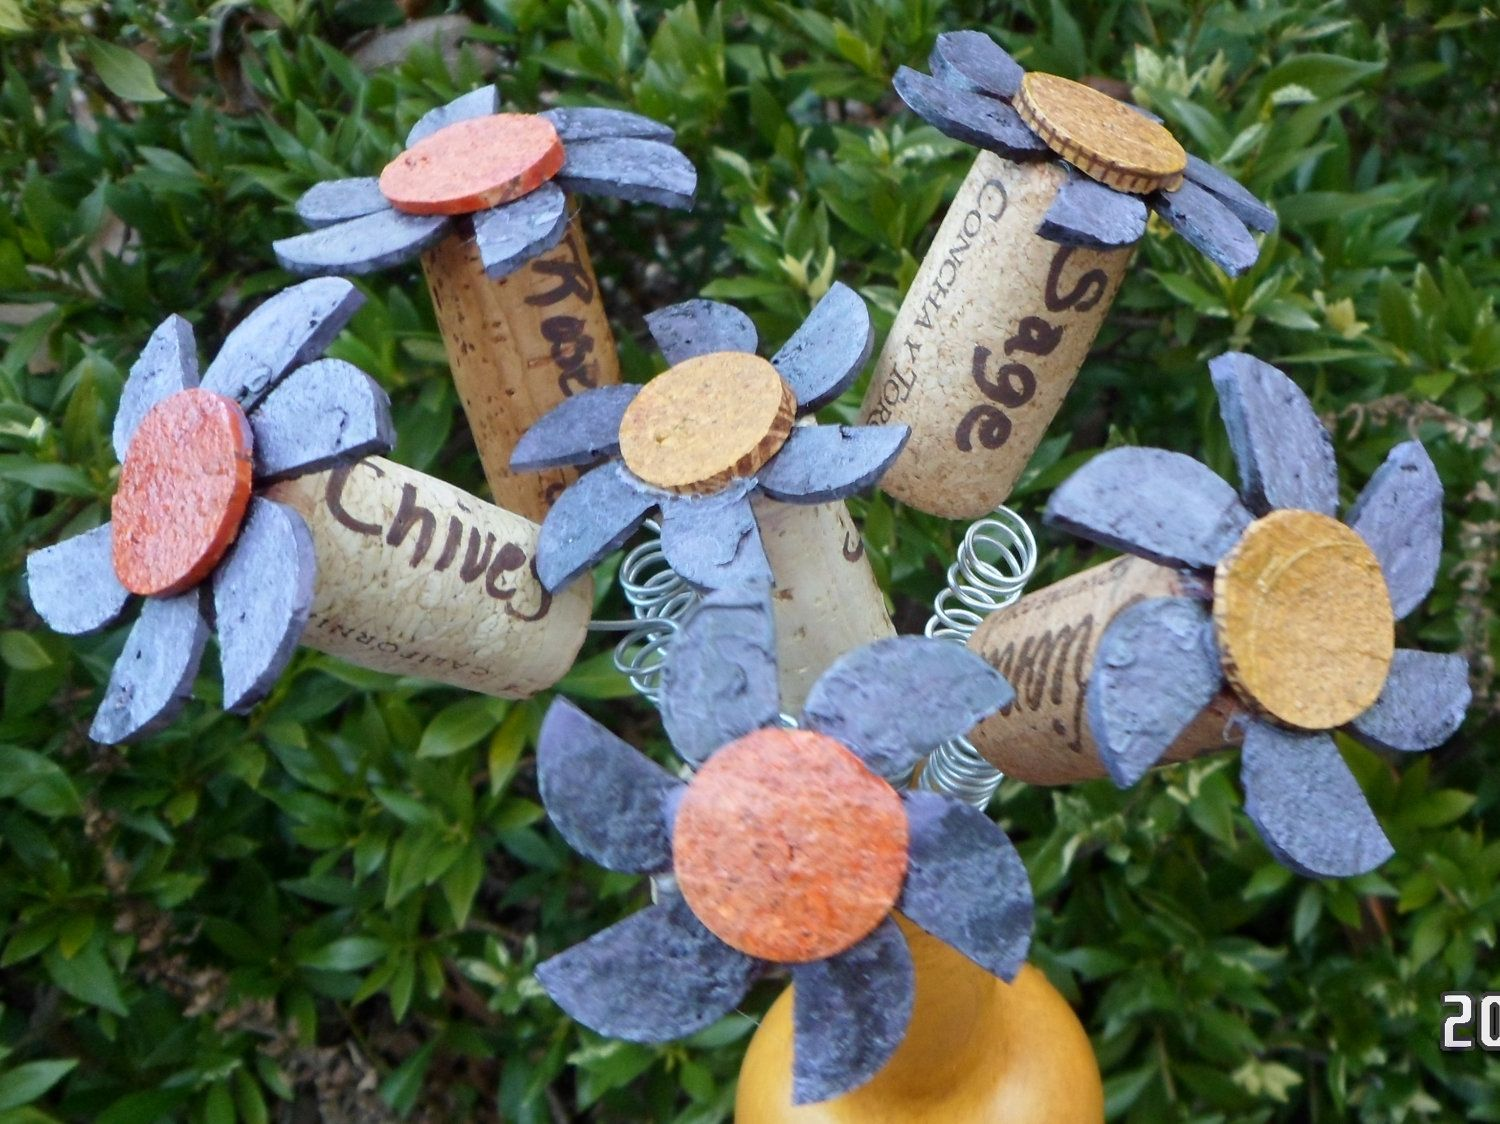 Upcycled Cork Herb Garden Markers Unique Gift for Wine Drinking Gardener. $16.00, via Etsy.